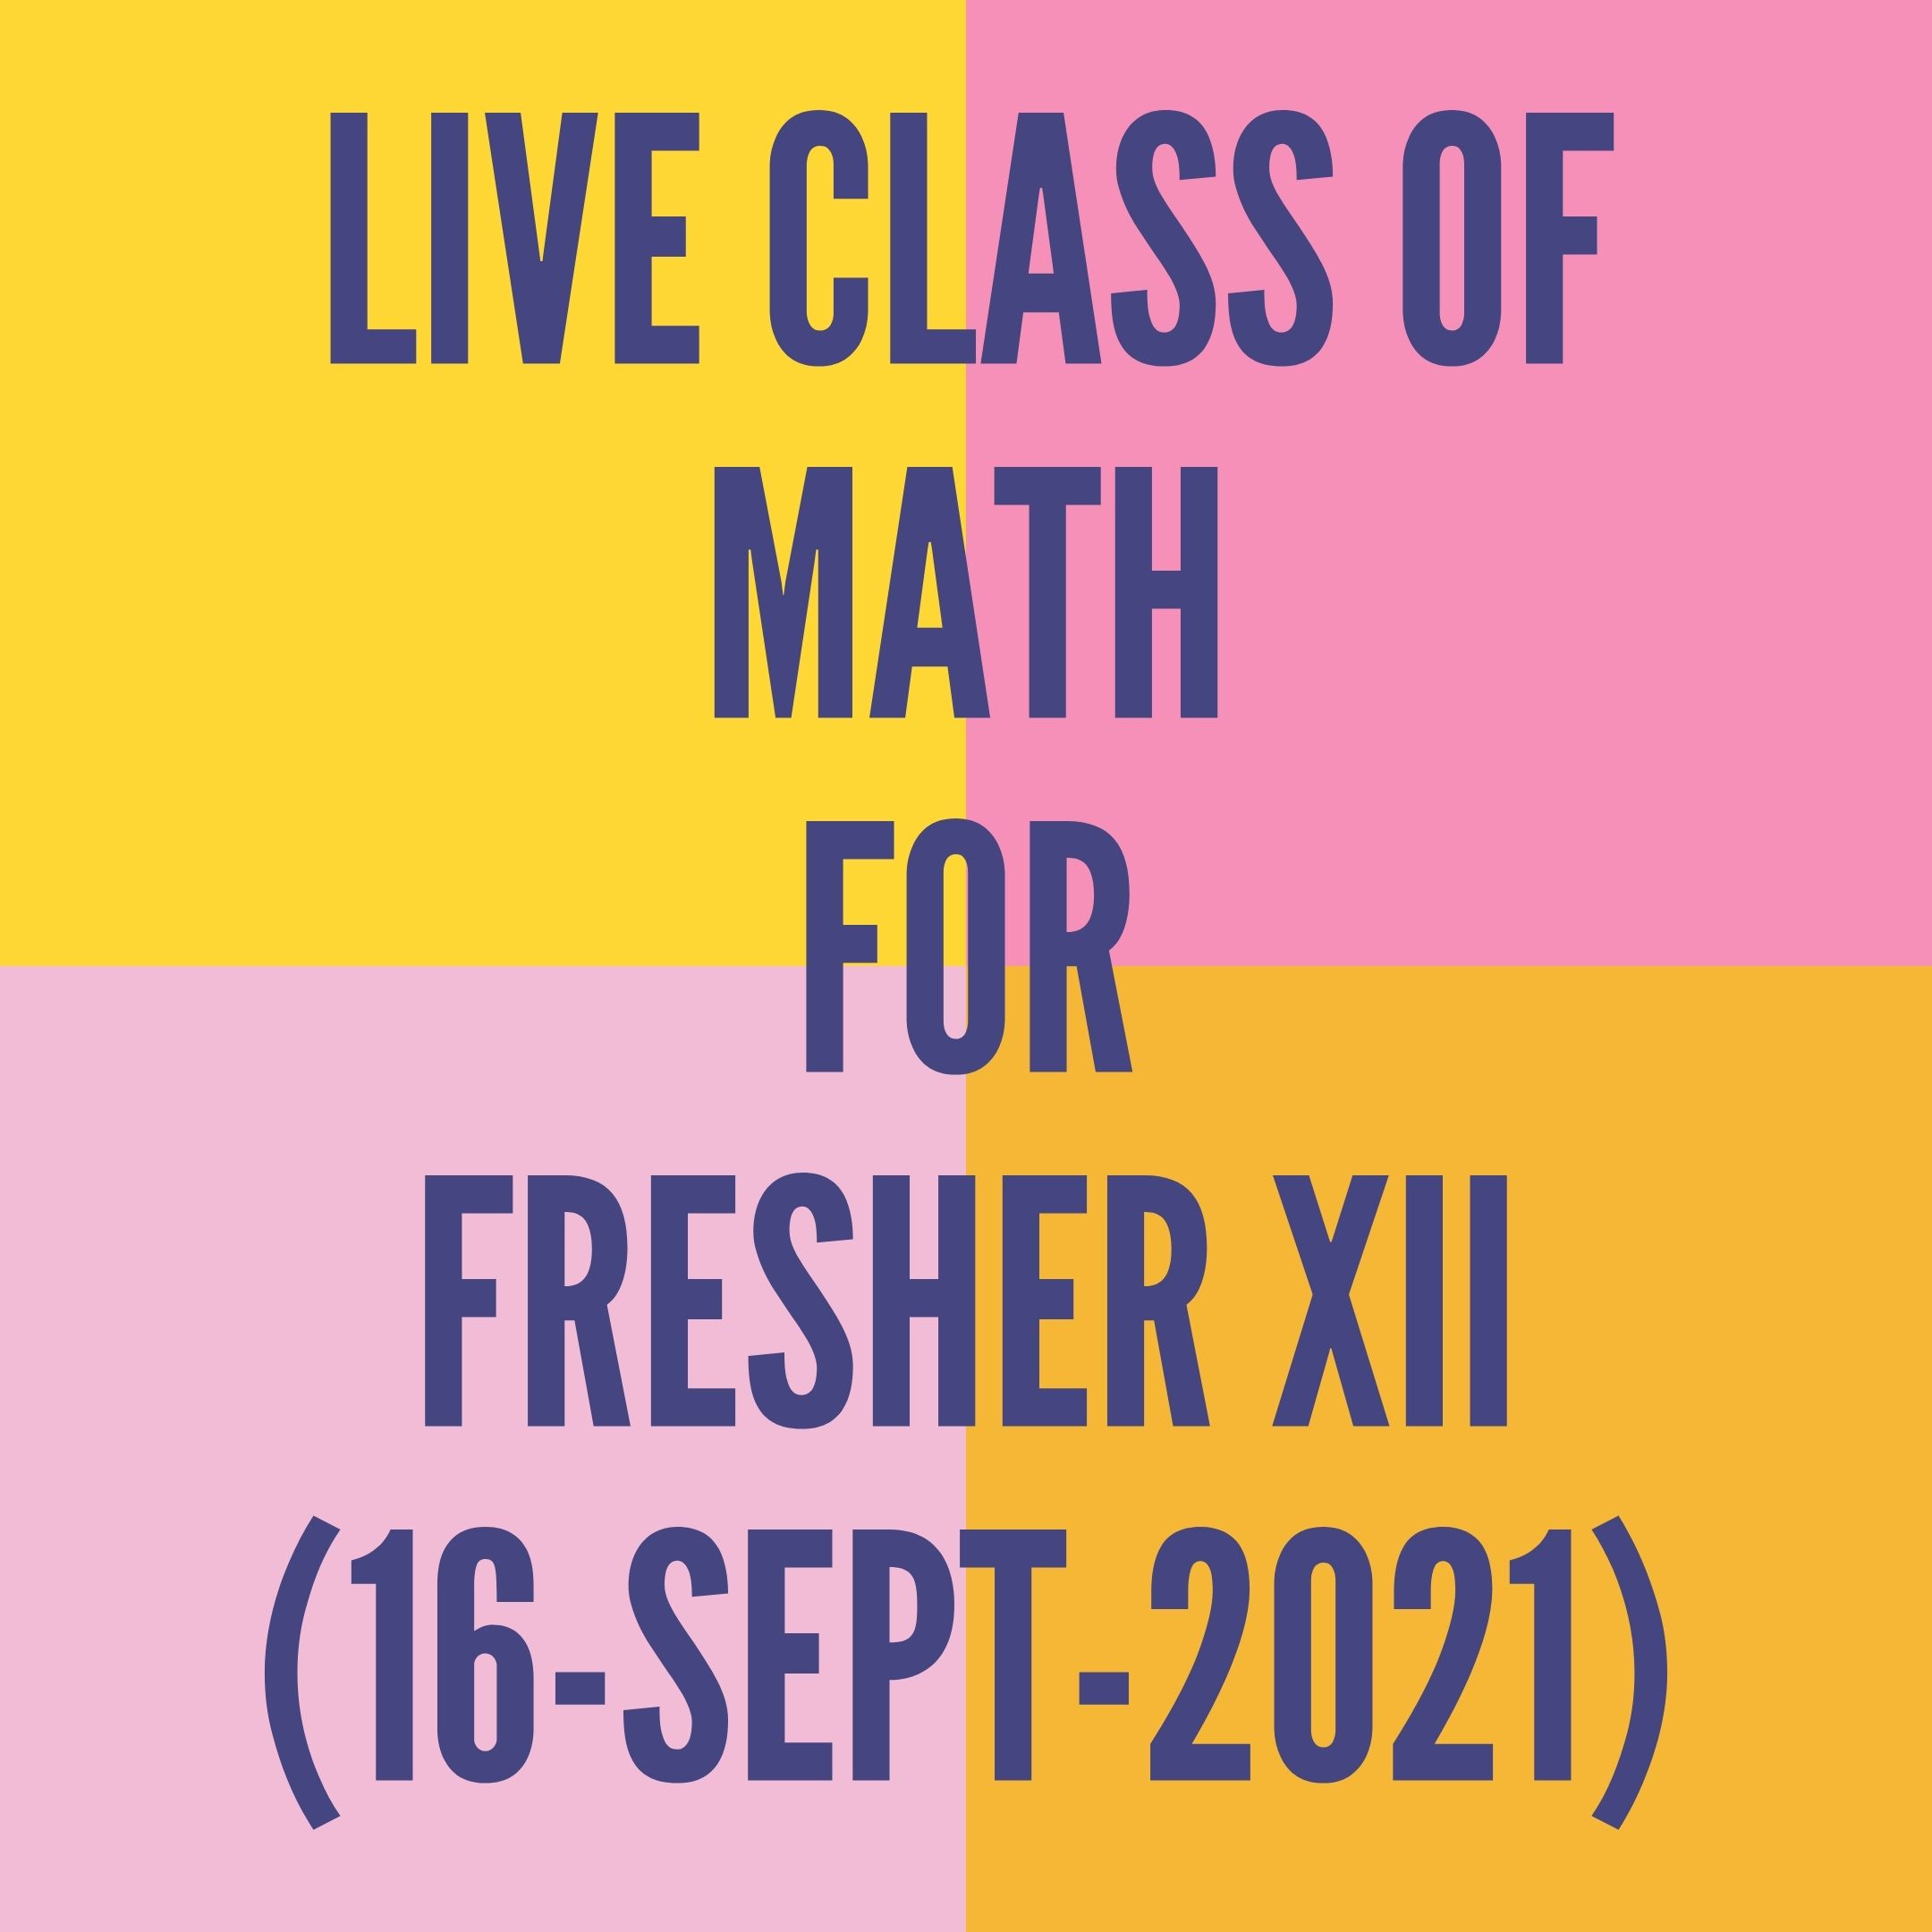 LIVE CLASS OF MATH FOR FRESHER XII (16-SEPT-2021)